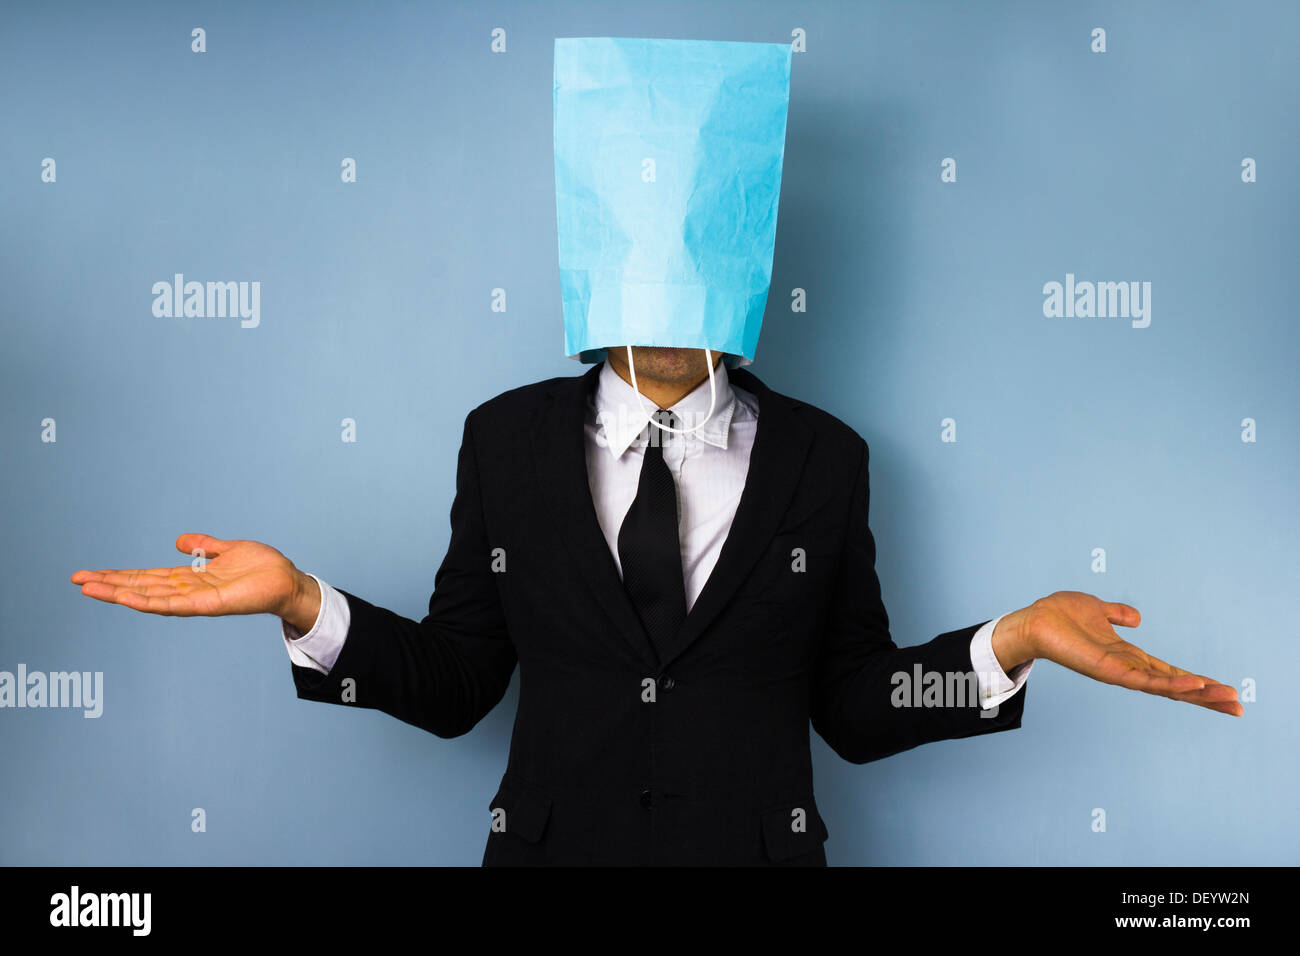 Confused businessman with a paper bag over his head - Stock Image